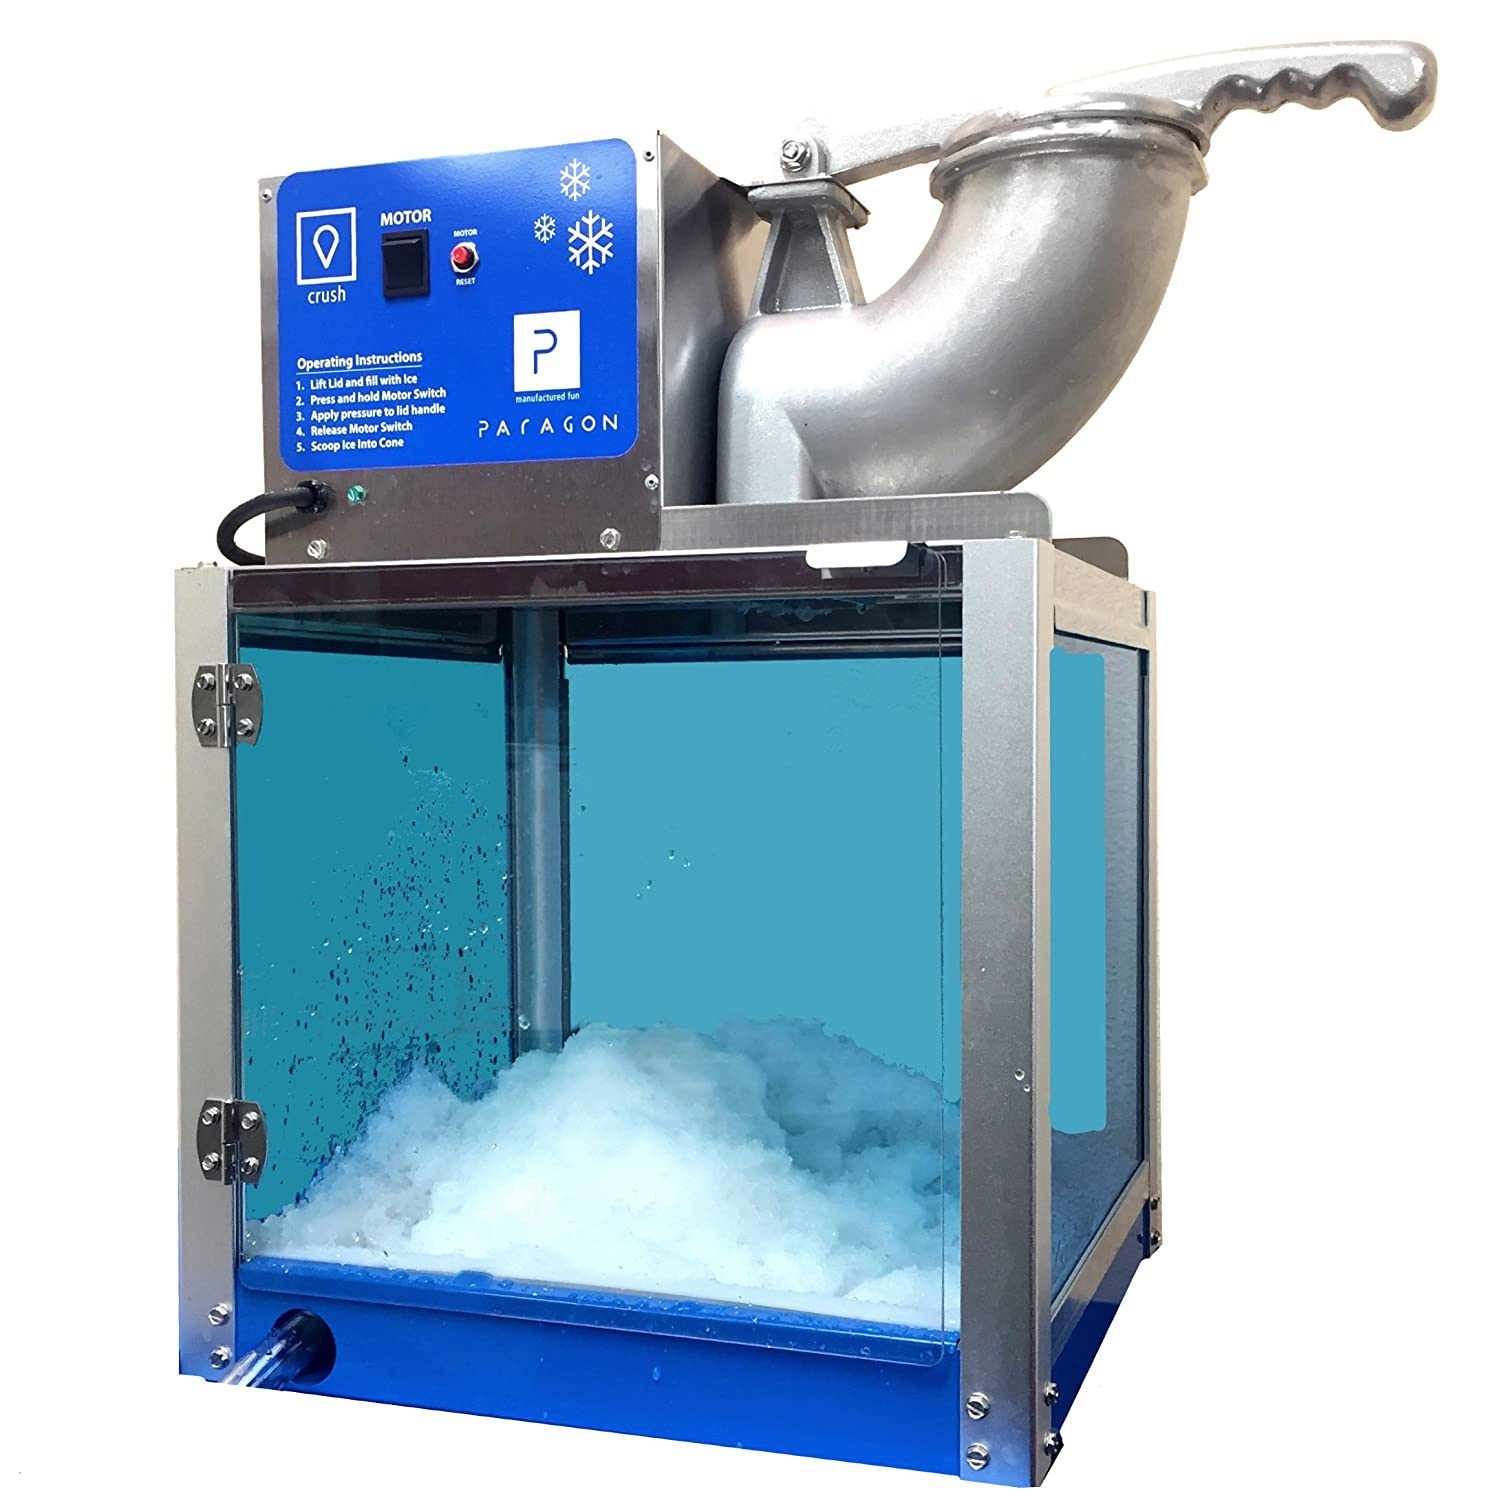 Paragon Arctic Blast Sno Cone Machine for Professional Concessionaires Requiring Commercial Heavy Duty Snow Cone Equipment 1/3 Horse Power 792 Watts Paragon - Manufactured Fun 6133310